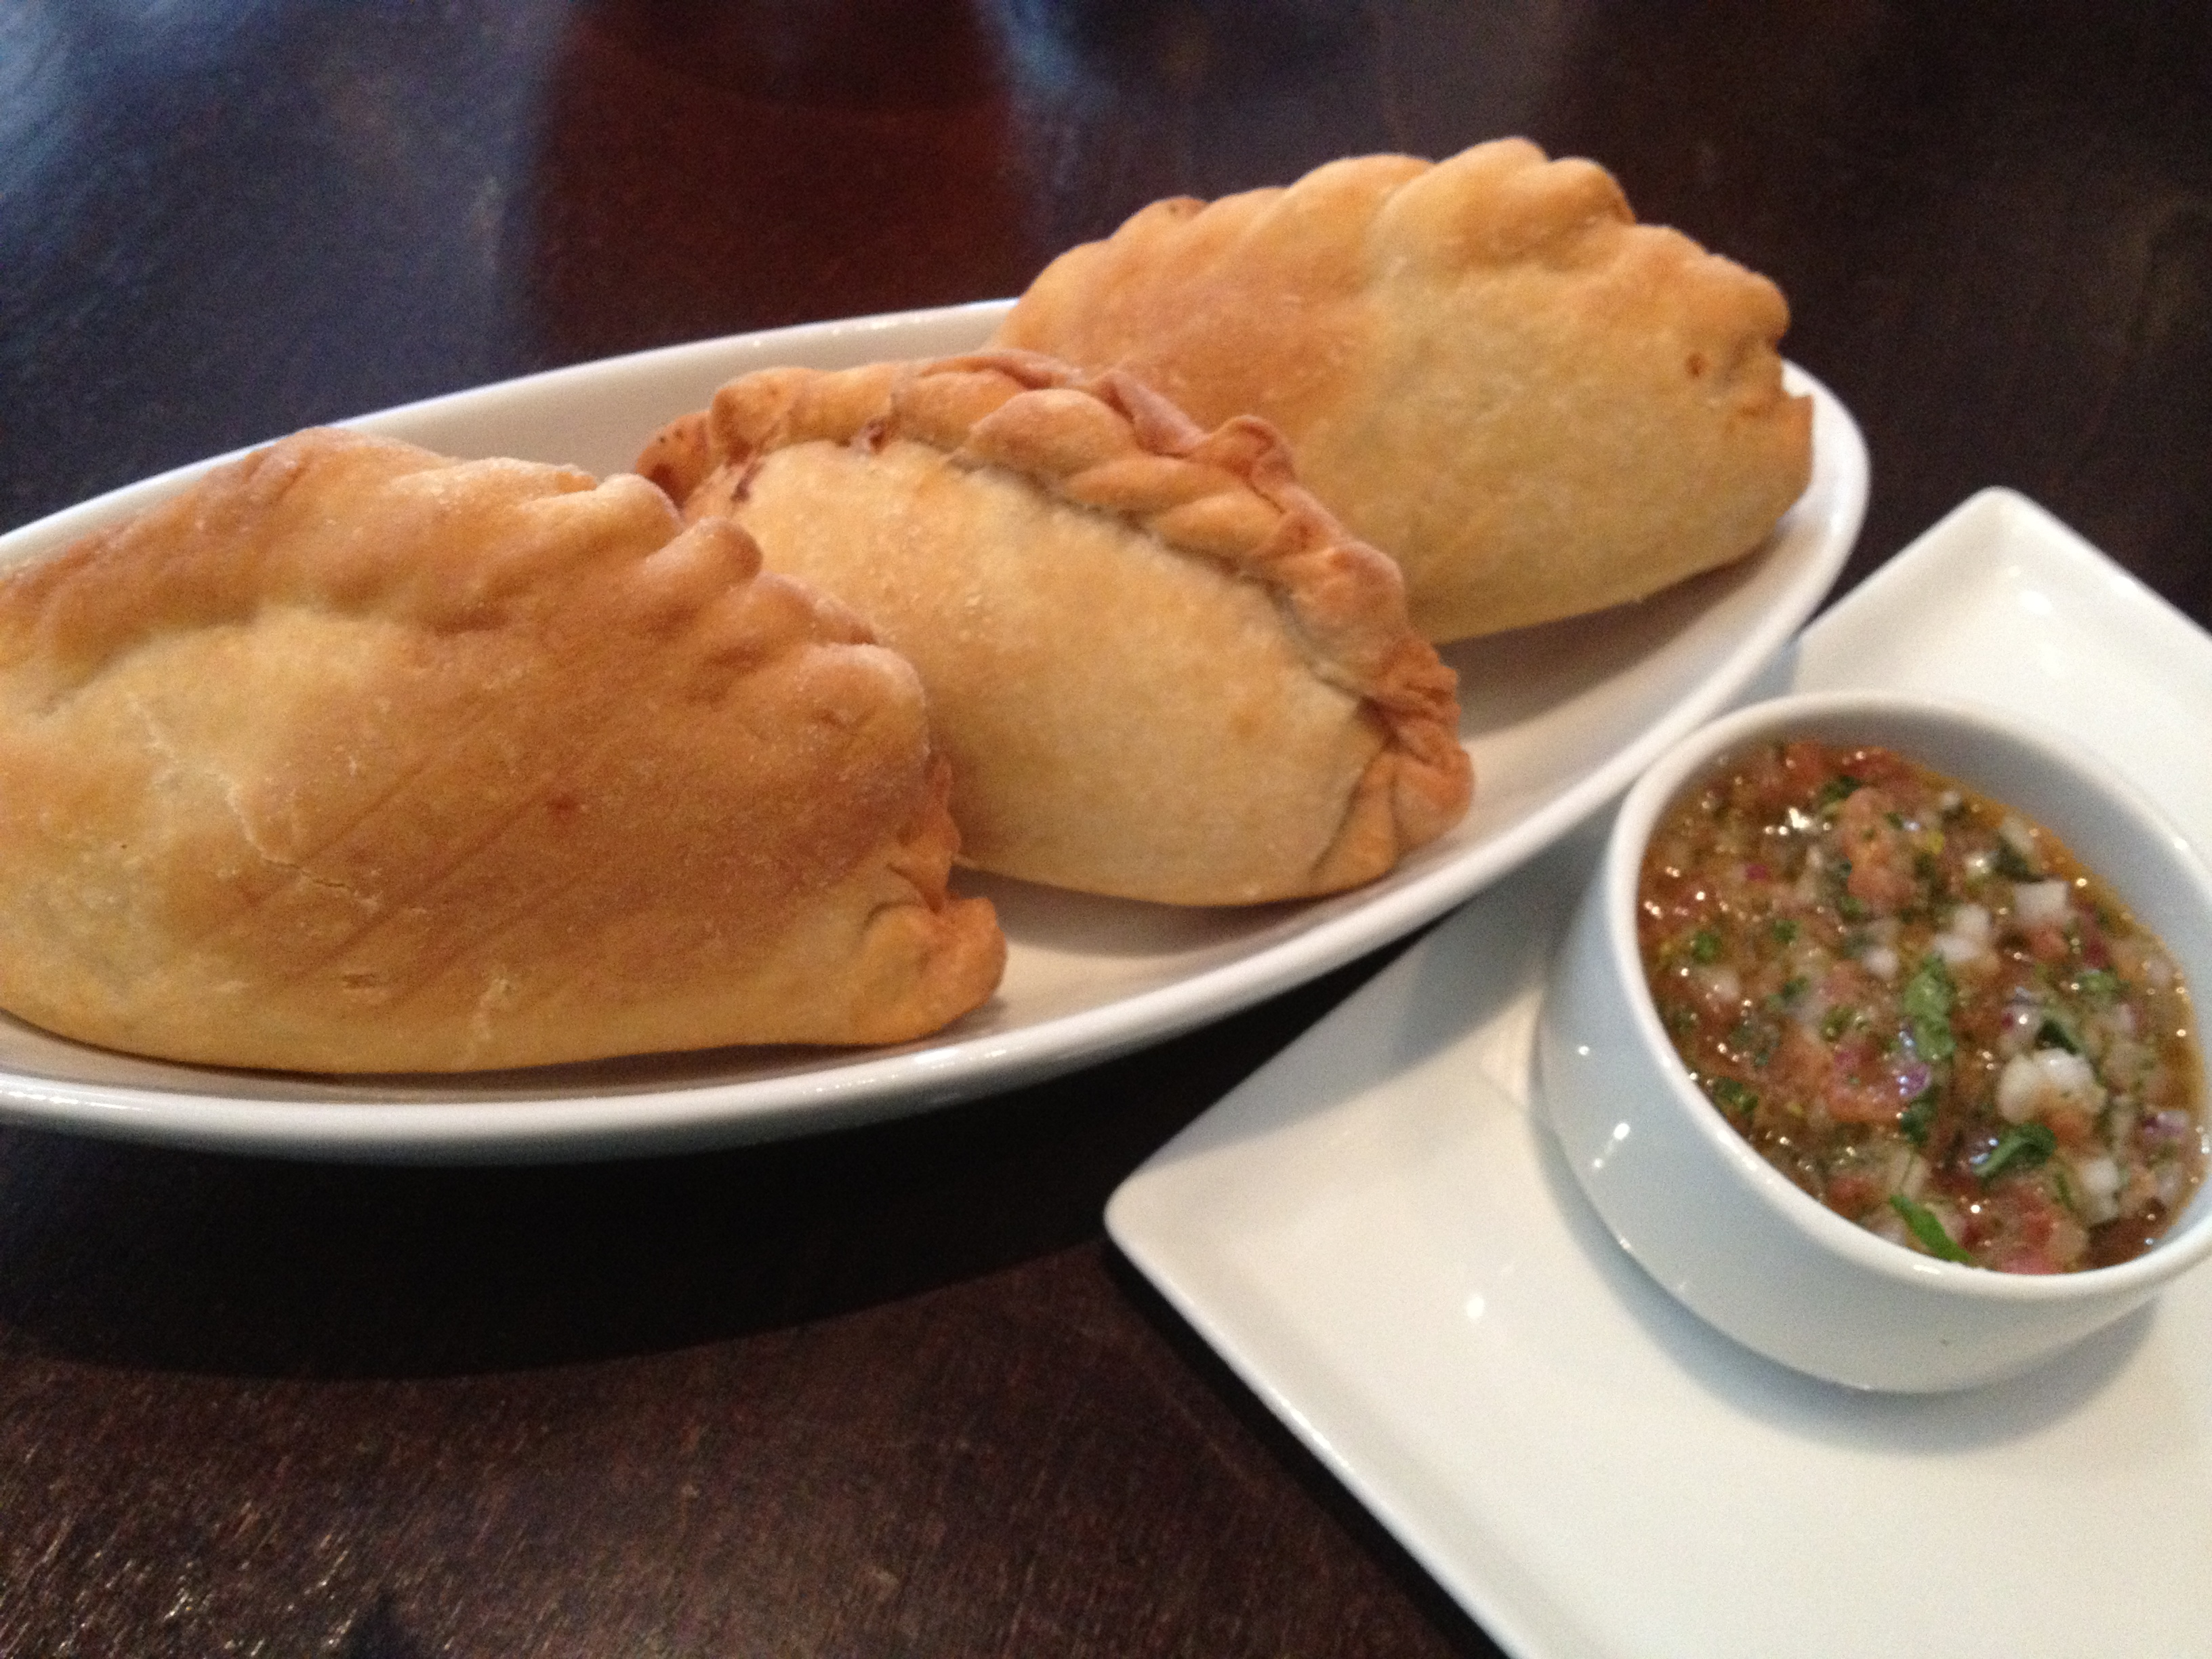 empanada | No Meat, No Problem